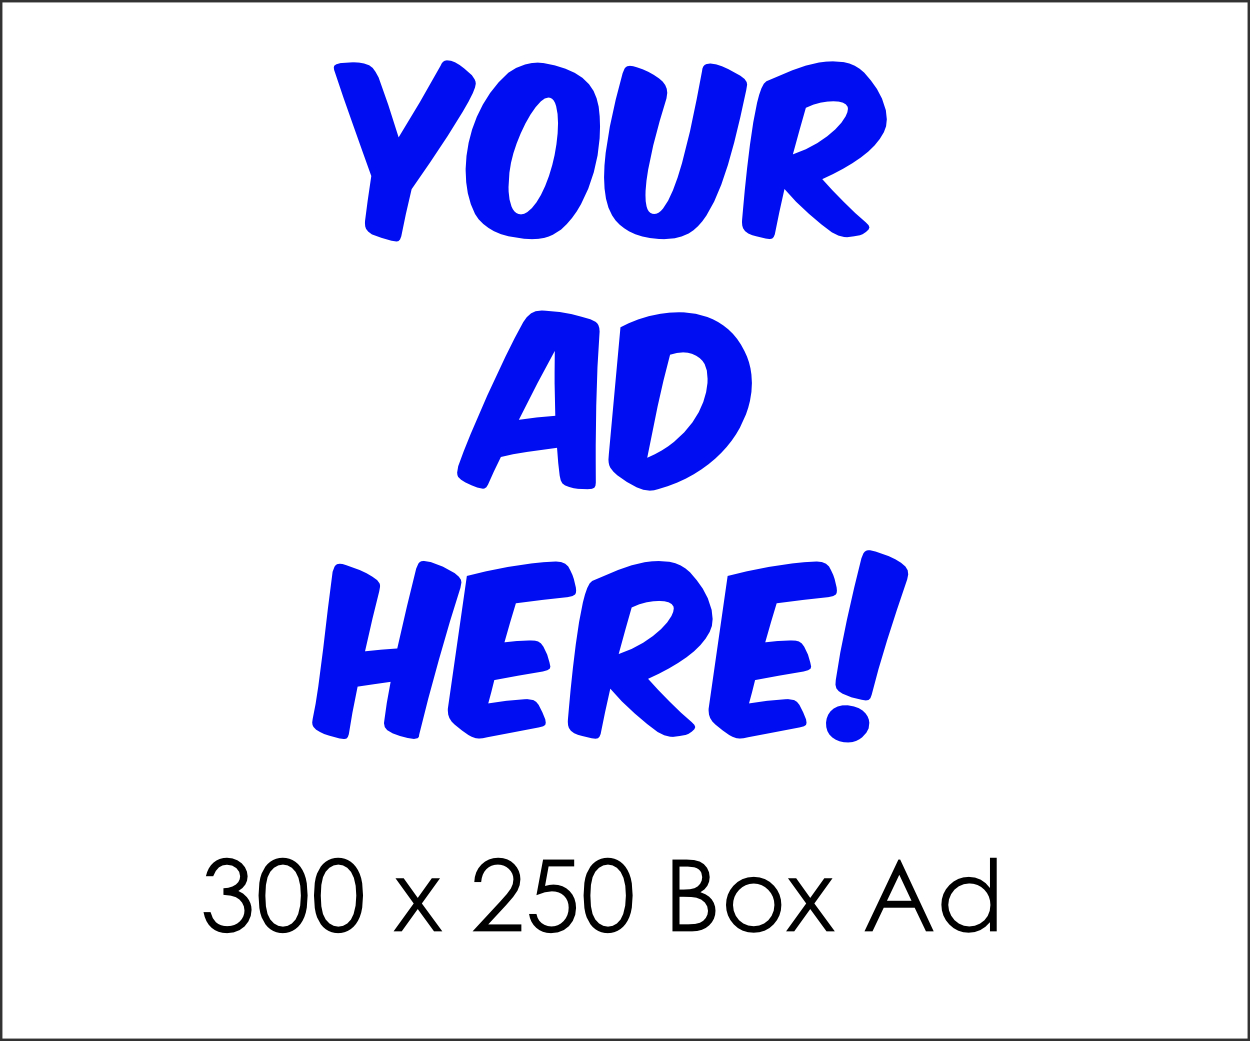 Box Ad - Advertising on Johns Creek Post